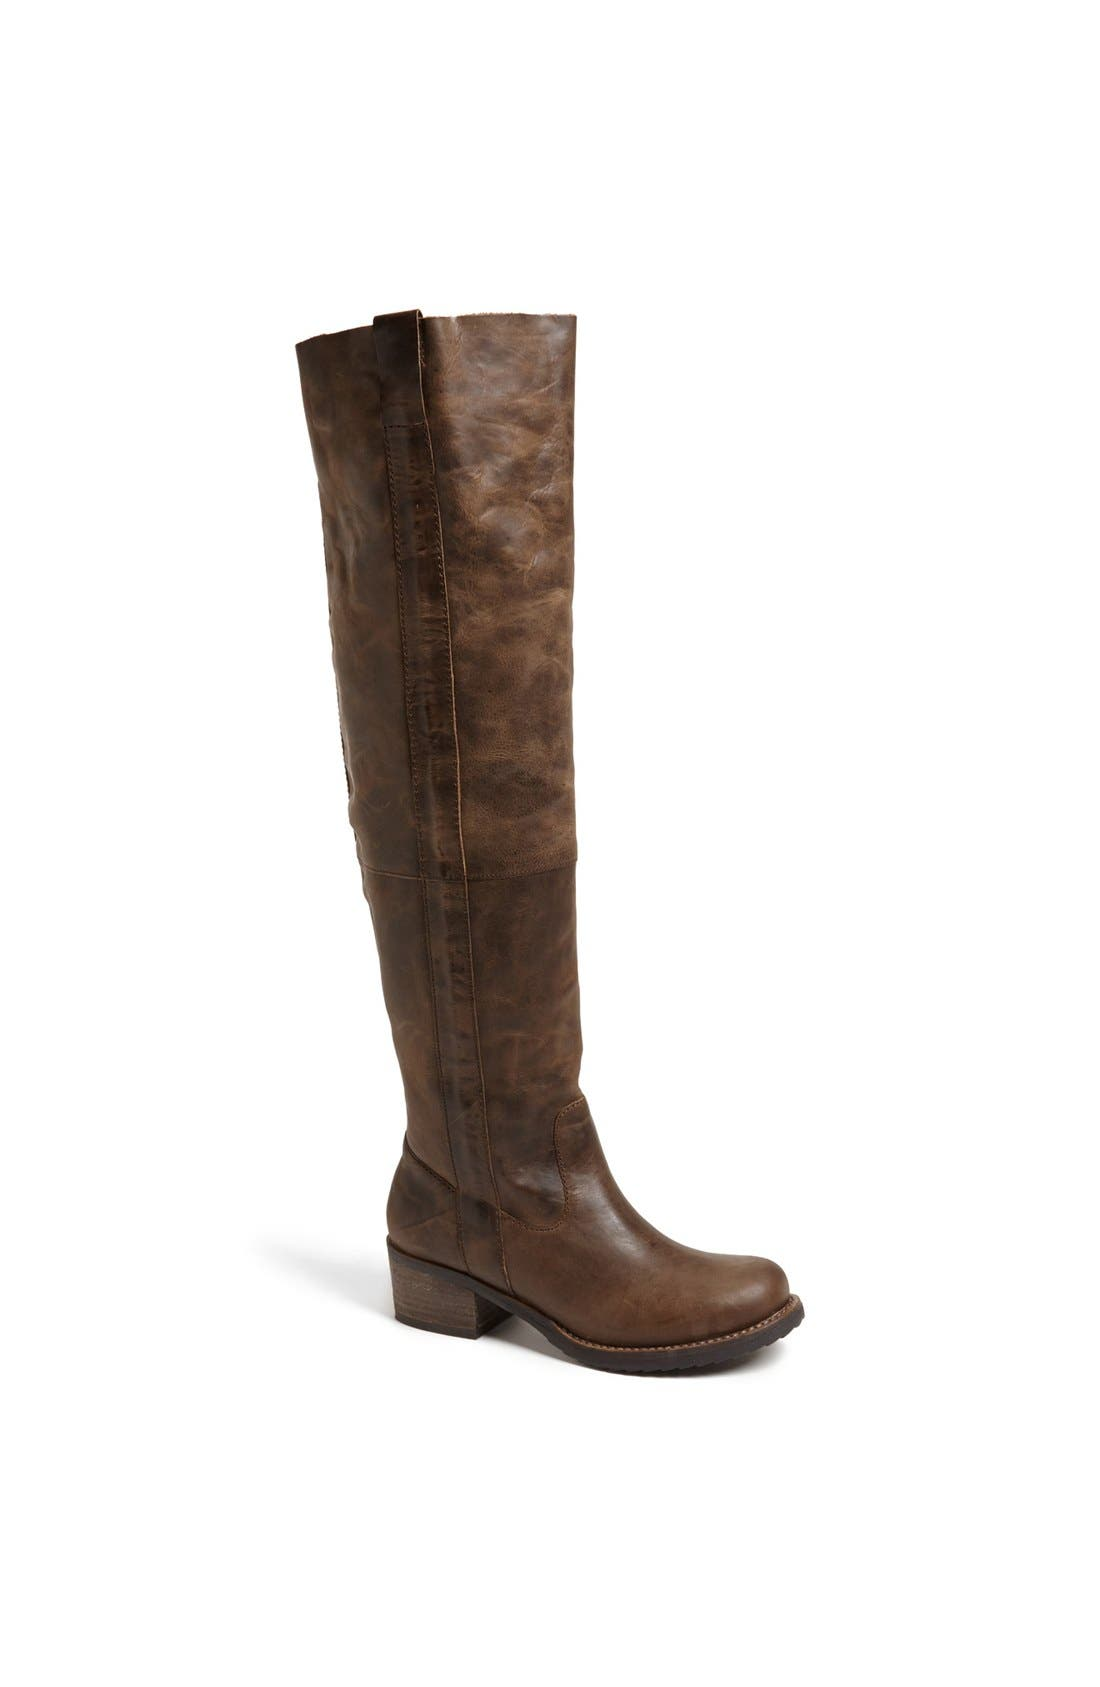 Alternate Image 1 Selected - Steve Madden 'Maisie' Leather Over the Knee Boot